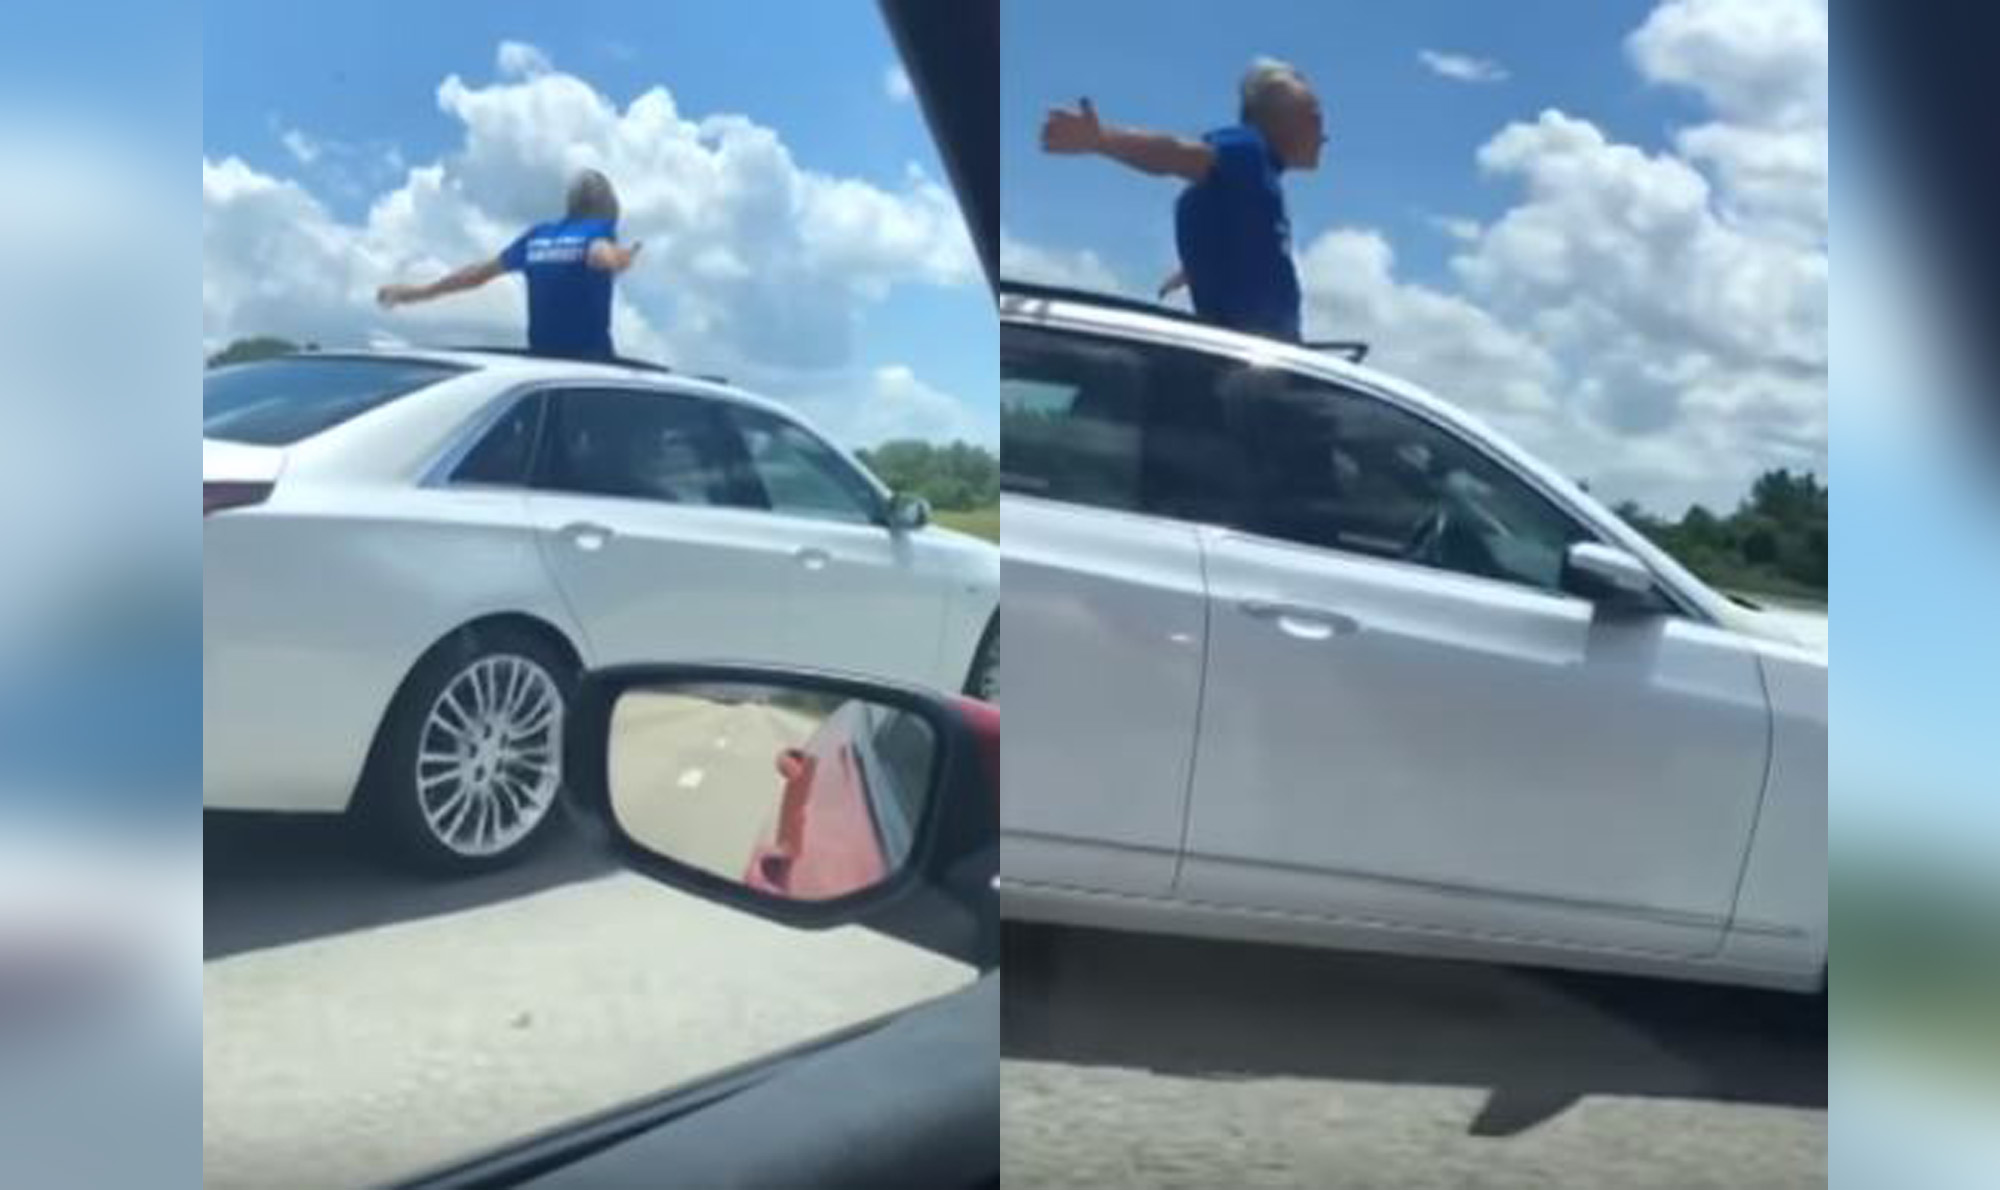 Florida man caught driving on sunroof: I'd rather go to jail